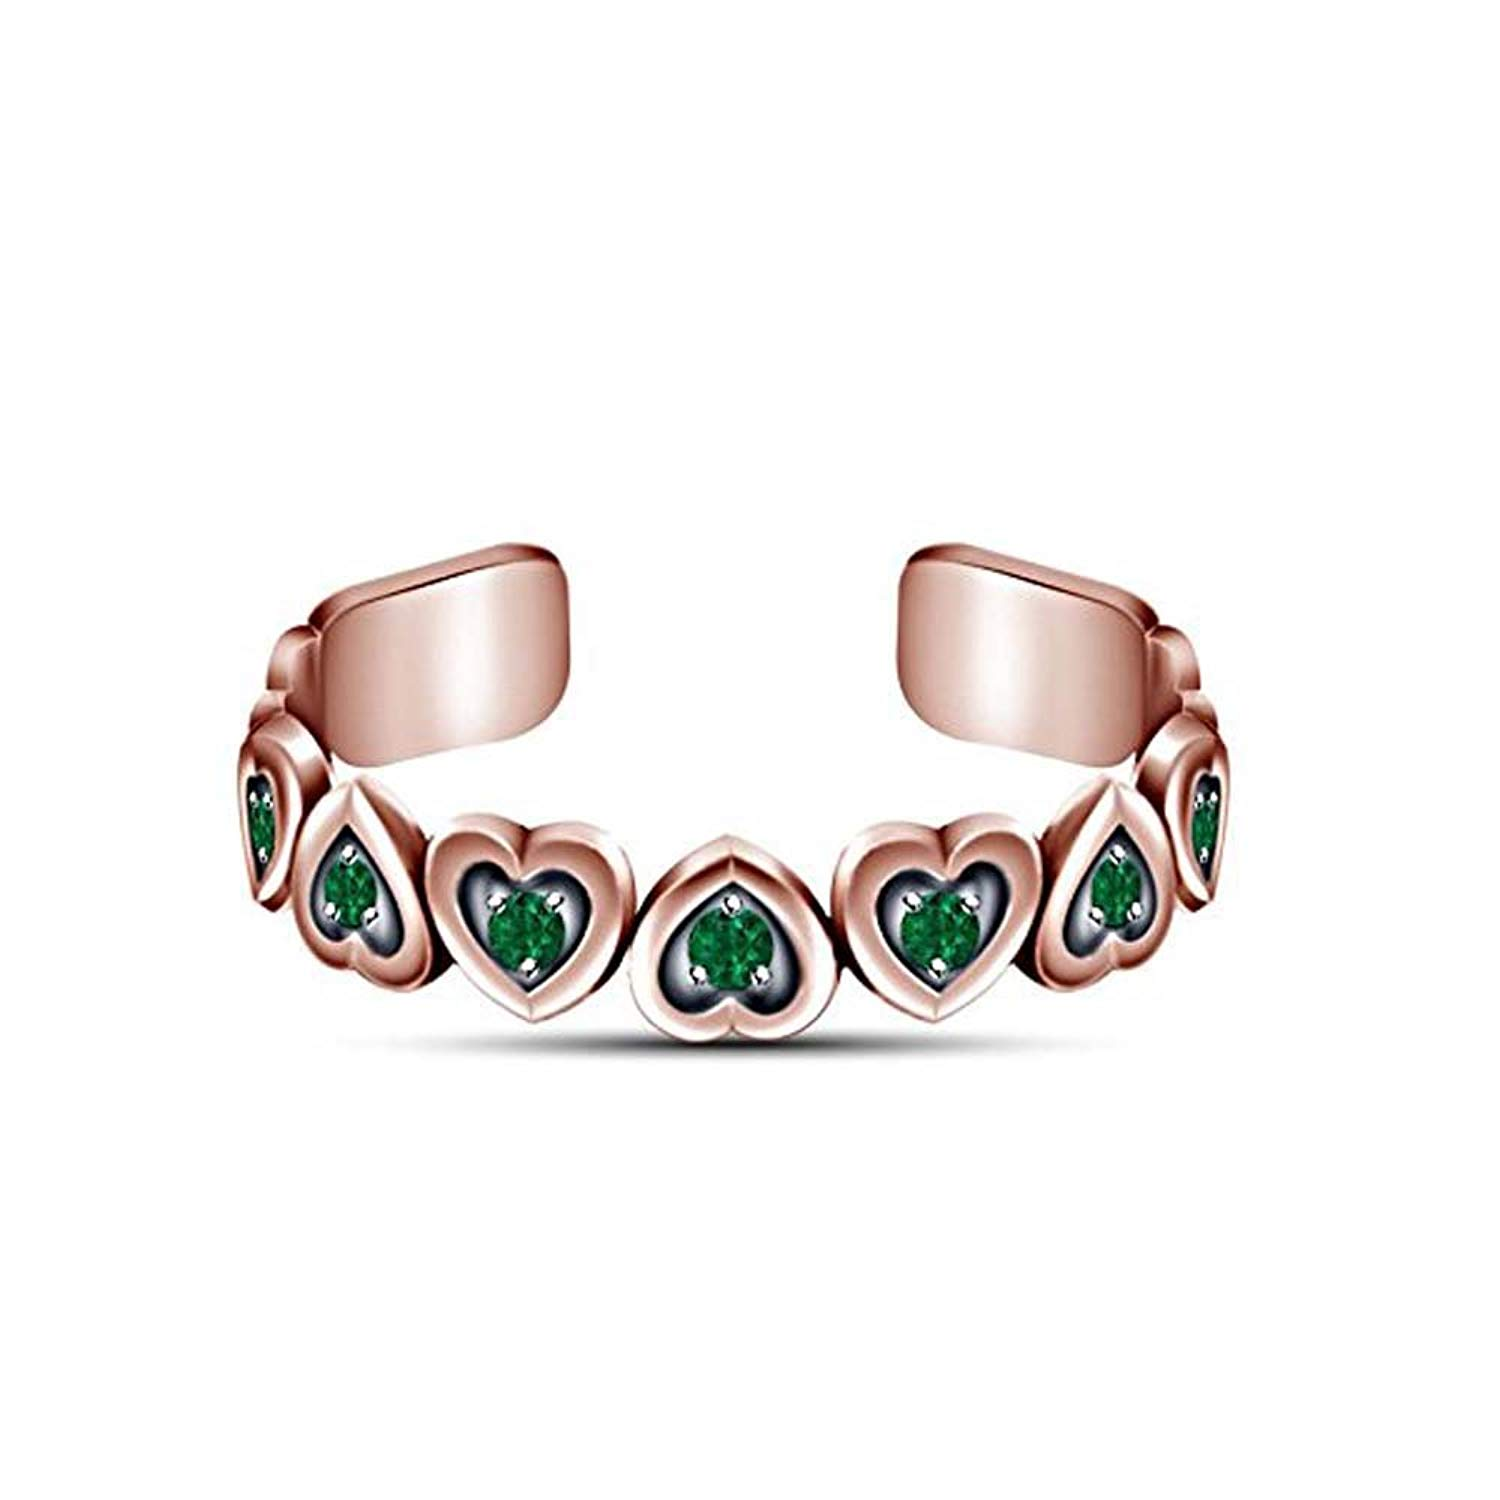 Green Emerald 14k Rose Gold Over .925 Silver Adjustable Womens Heart Toe Ring Jewelry & Watches